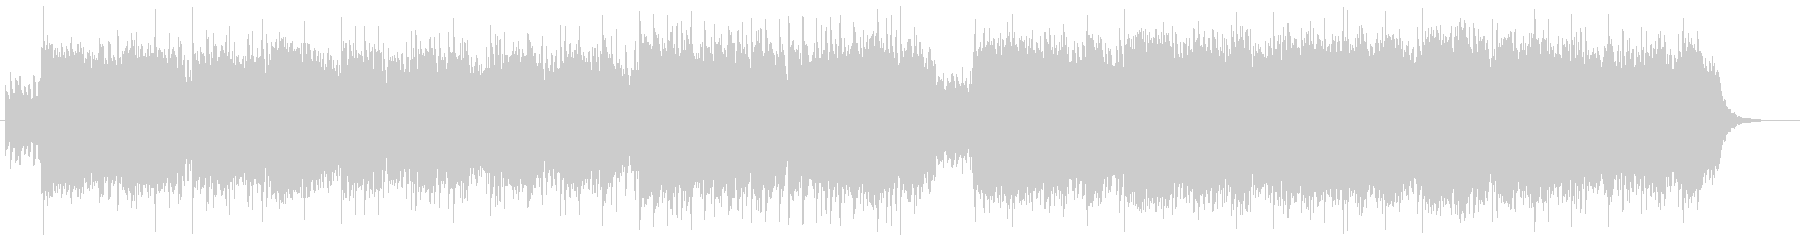 Awful relaxation music's unreproduced waveform